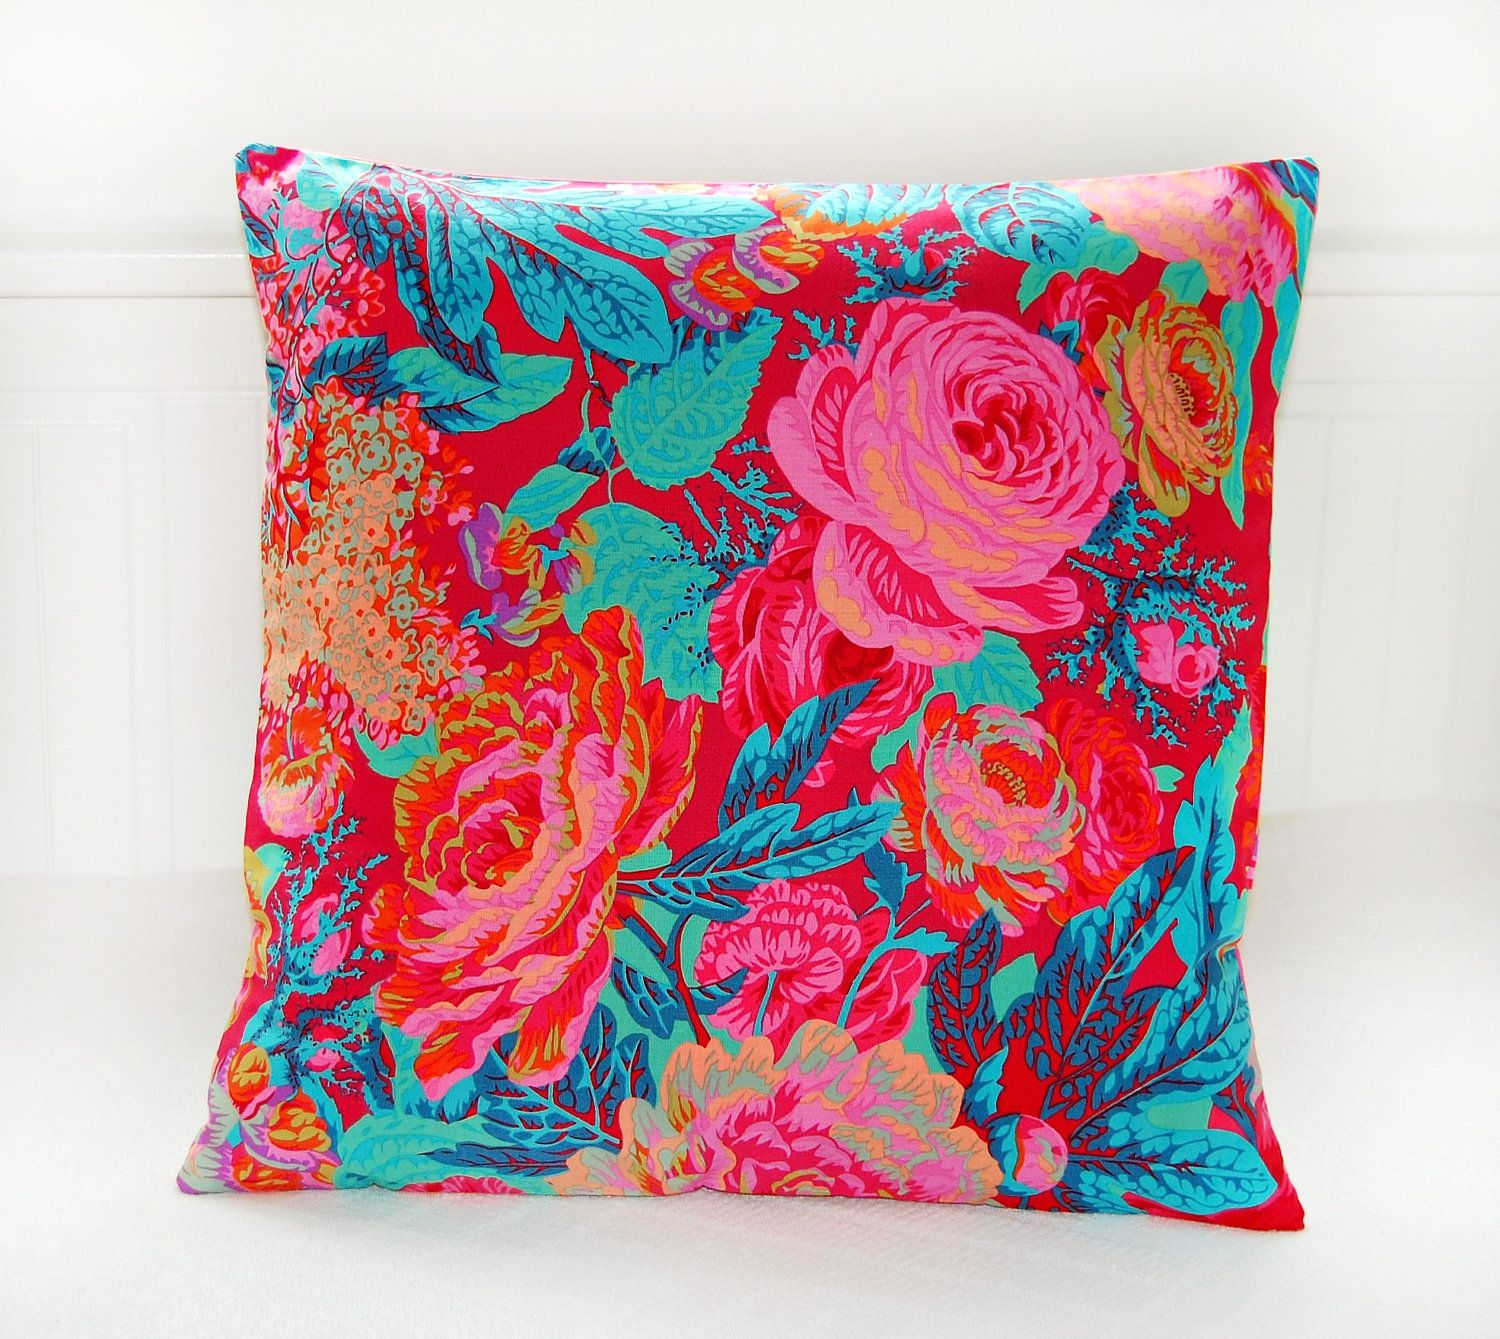 Throw pillows cards mugs shower curtains - Decorative Pillow Cover Orange Teal Pink Roses Flowers Cushion Cover 16 Inch